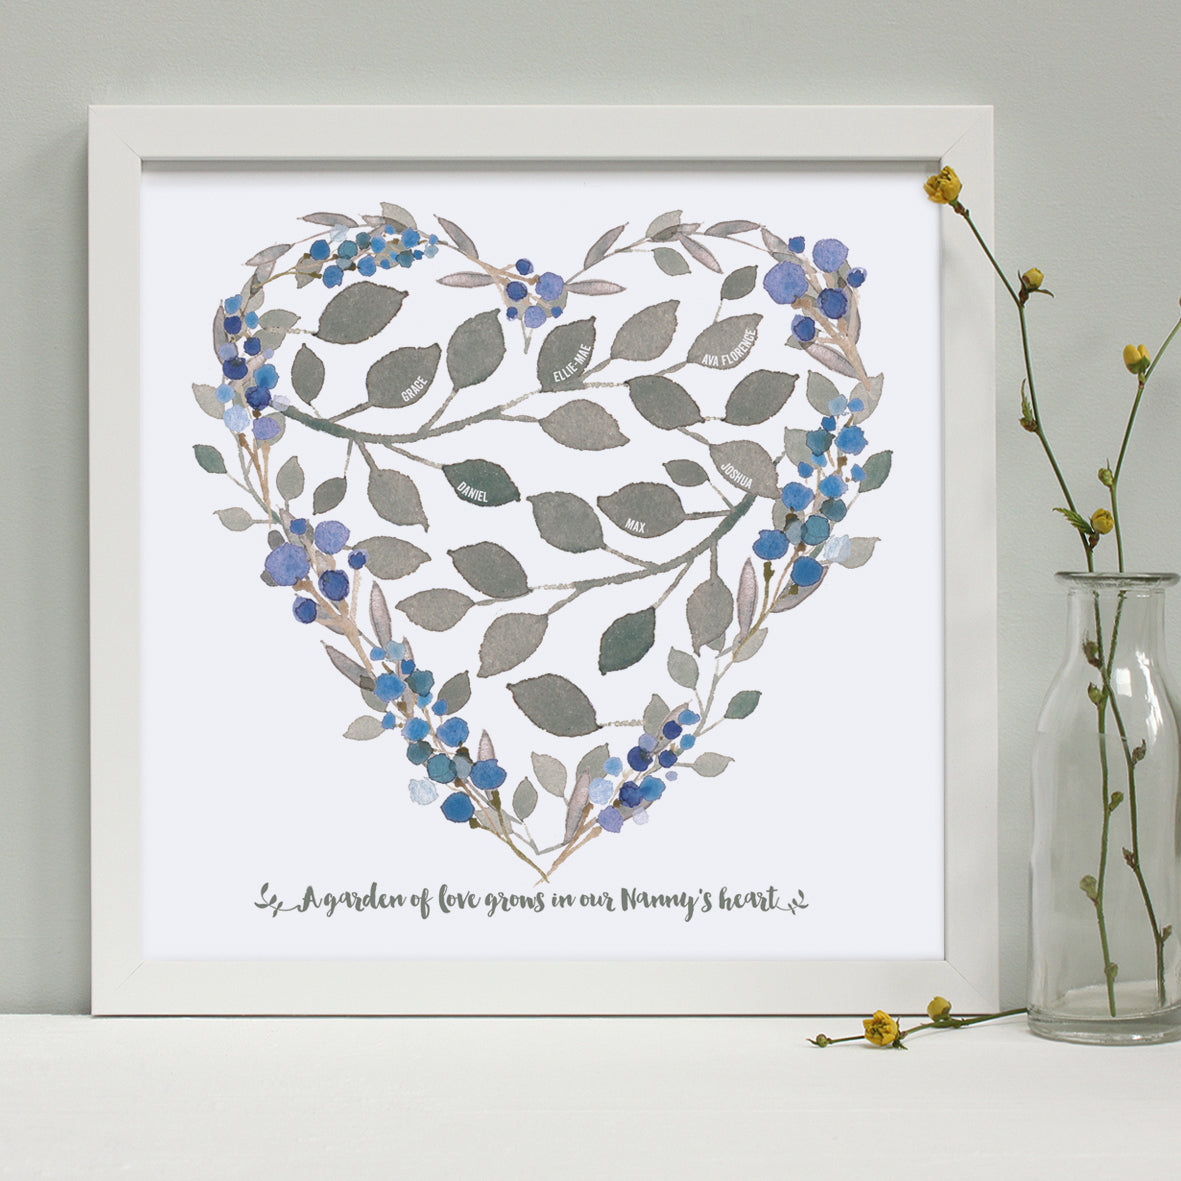 personalised grandmother heart print, white frame